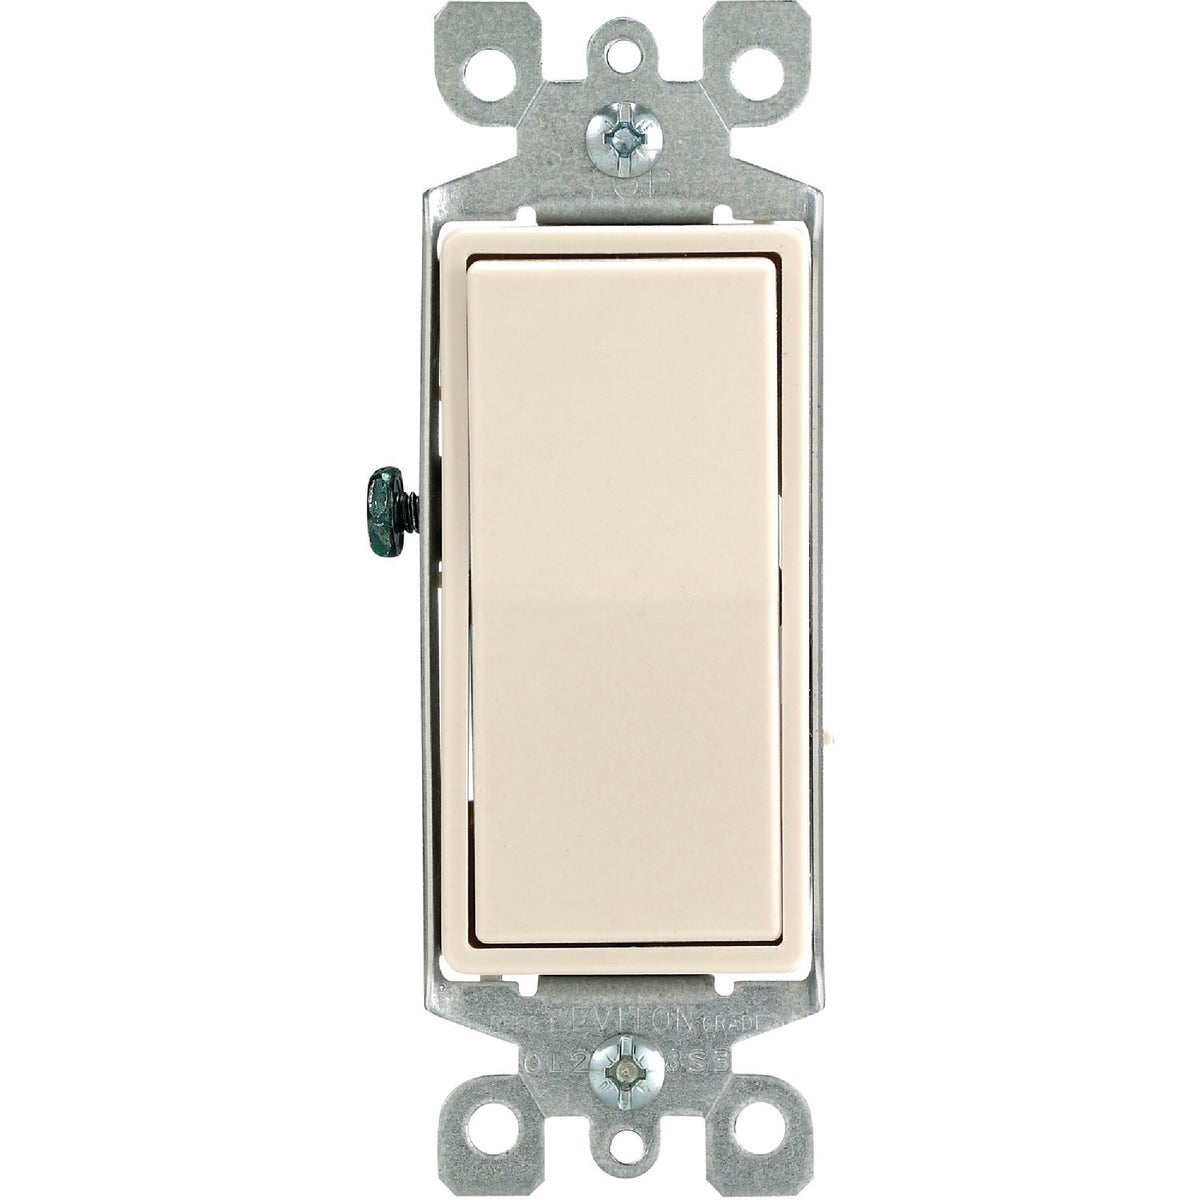 LT ALM GRND SWITCH - S06-05611-2TS by Leviton Mfg Co